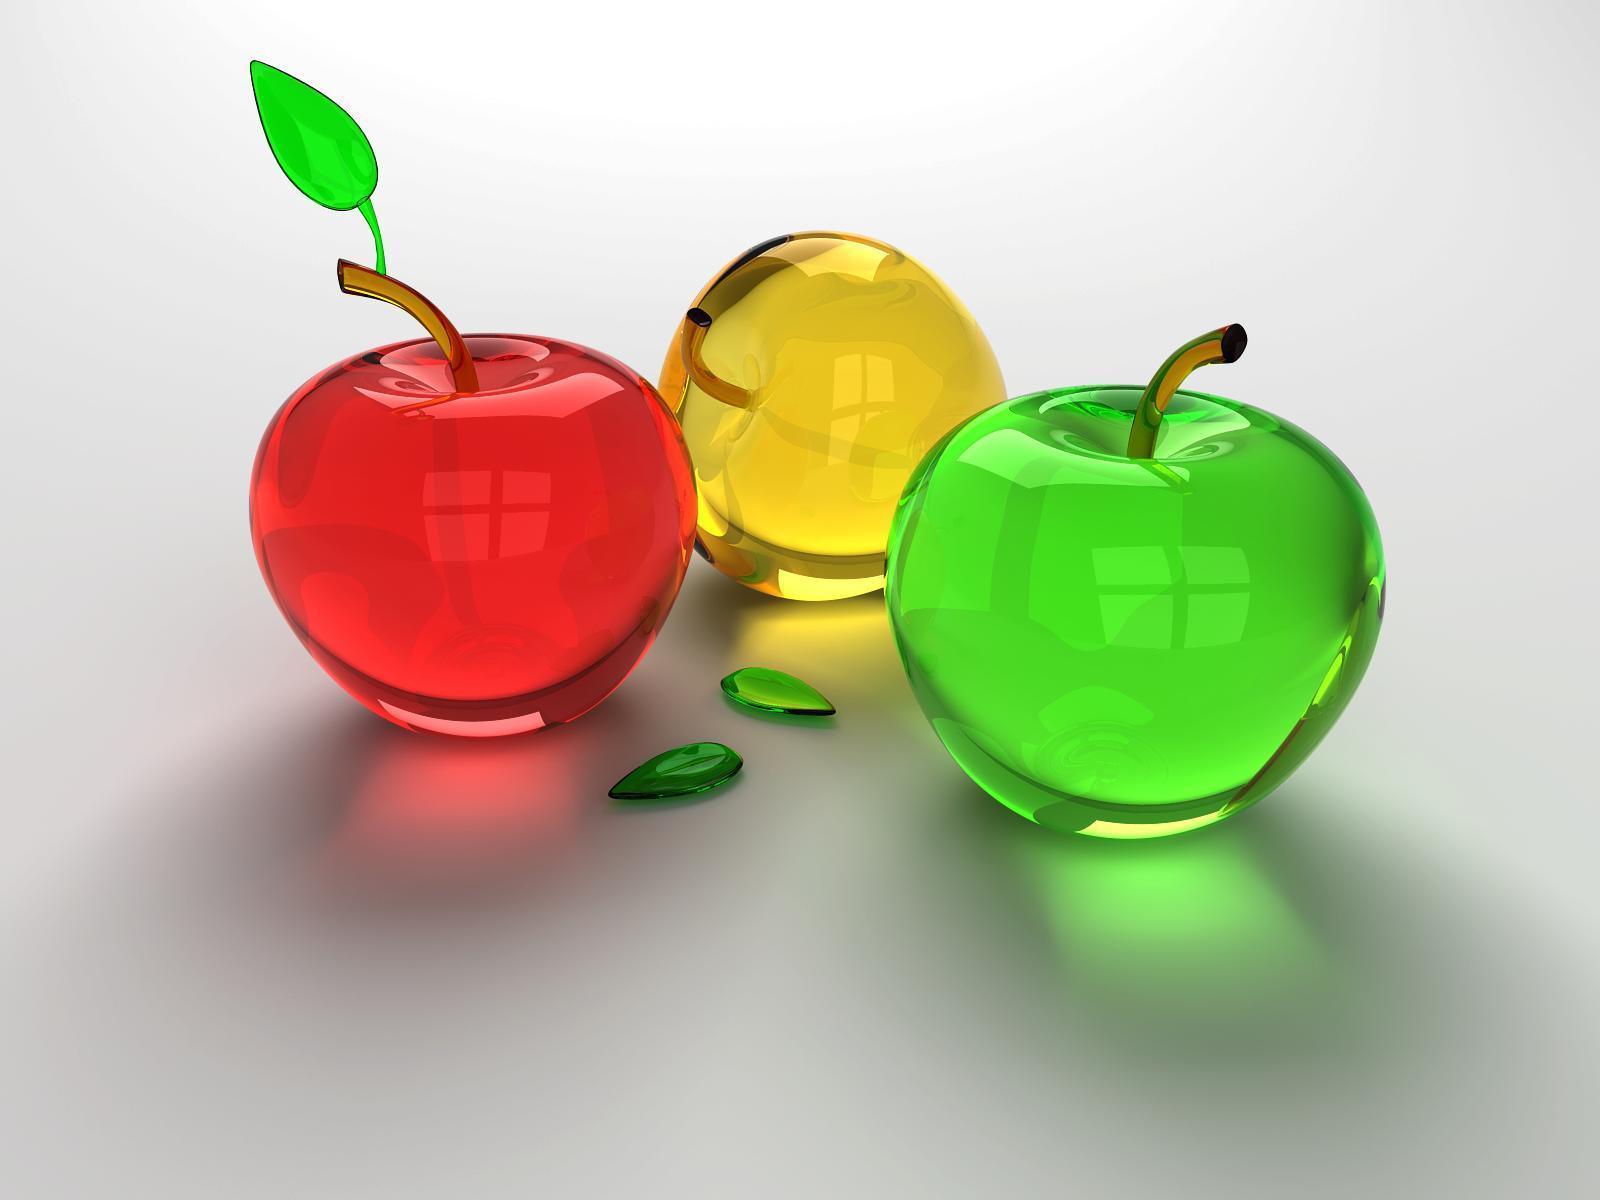 Glass Apples Wallpaper - fruit wallpaper